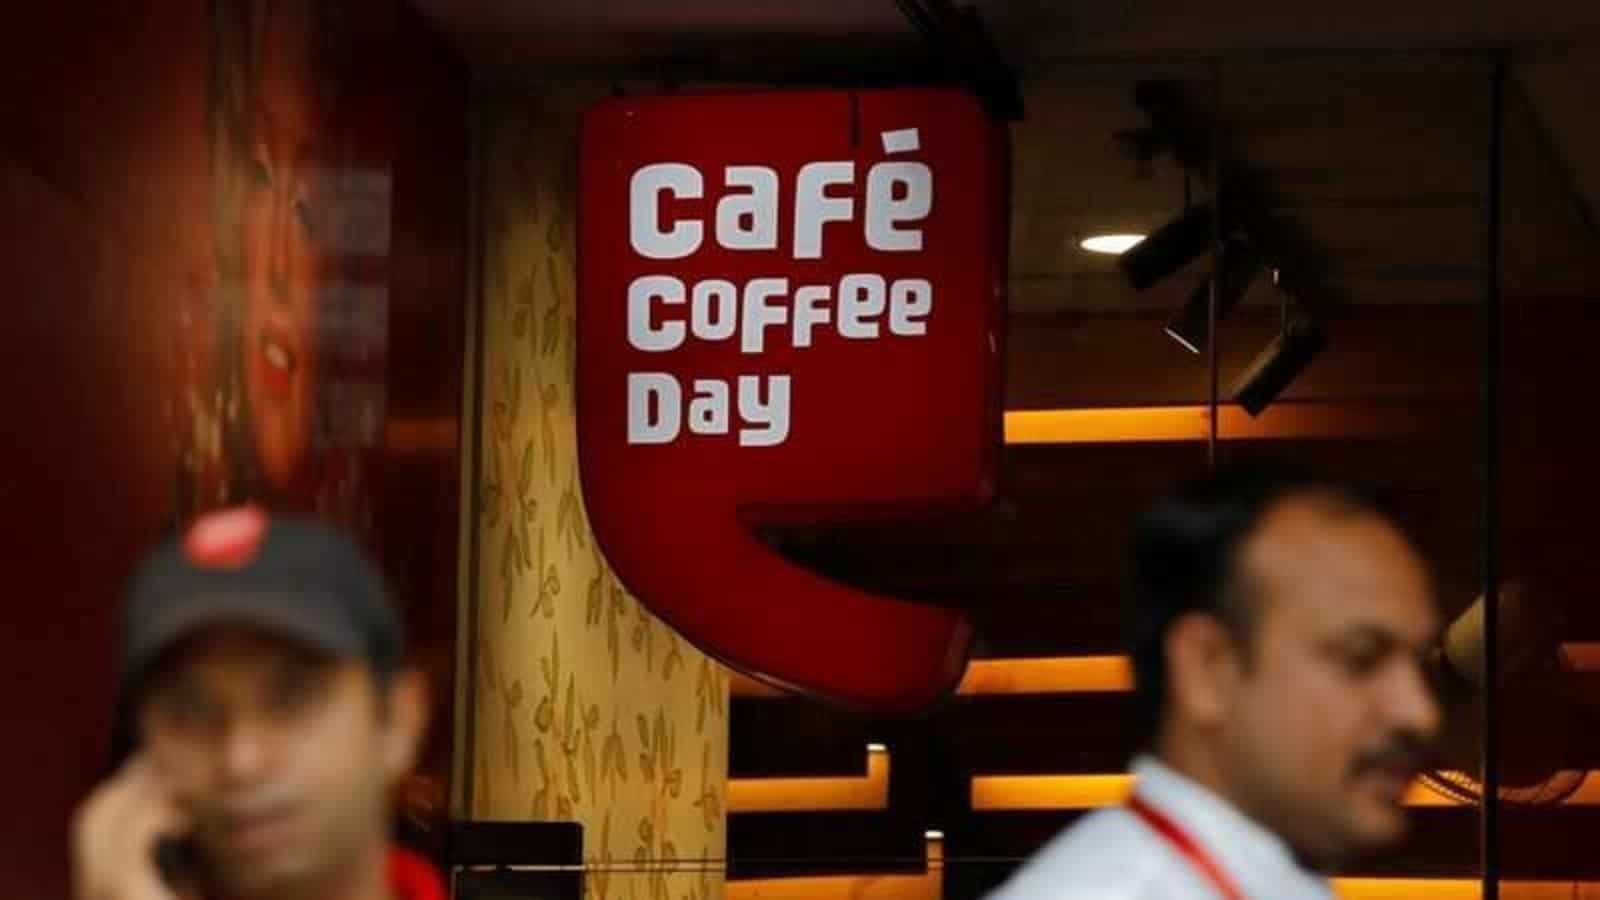 Coffee Day shares will start trading again from April 26